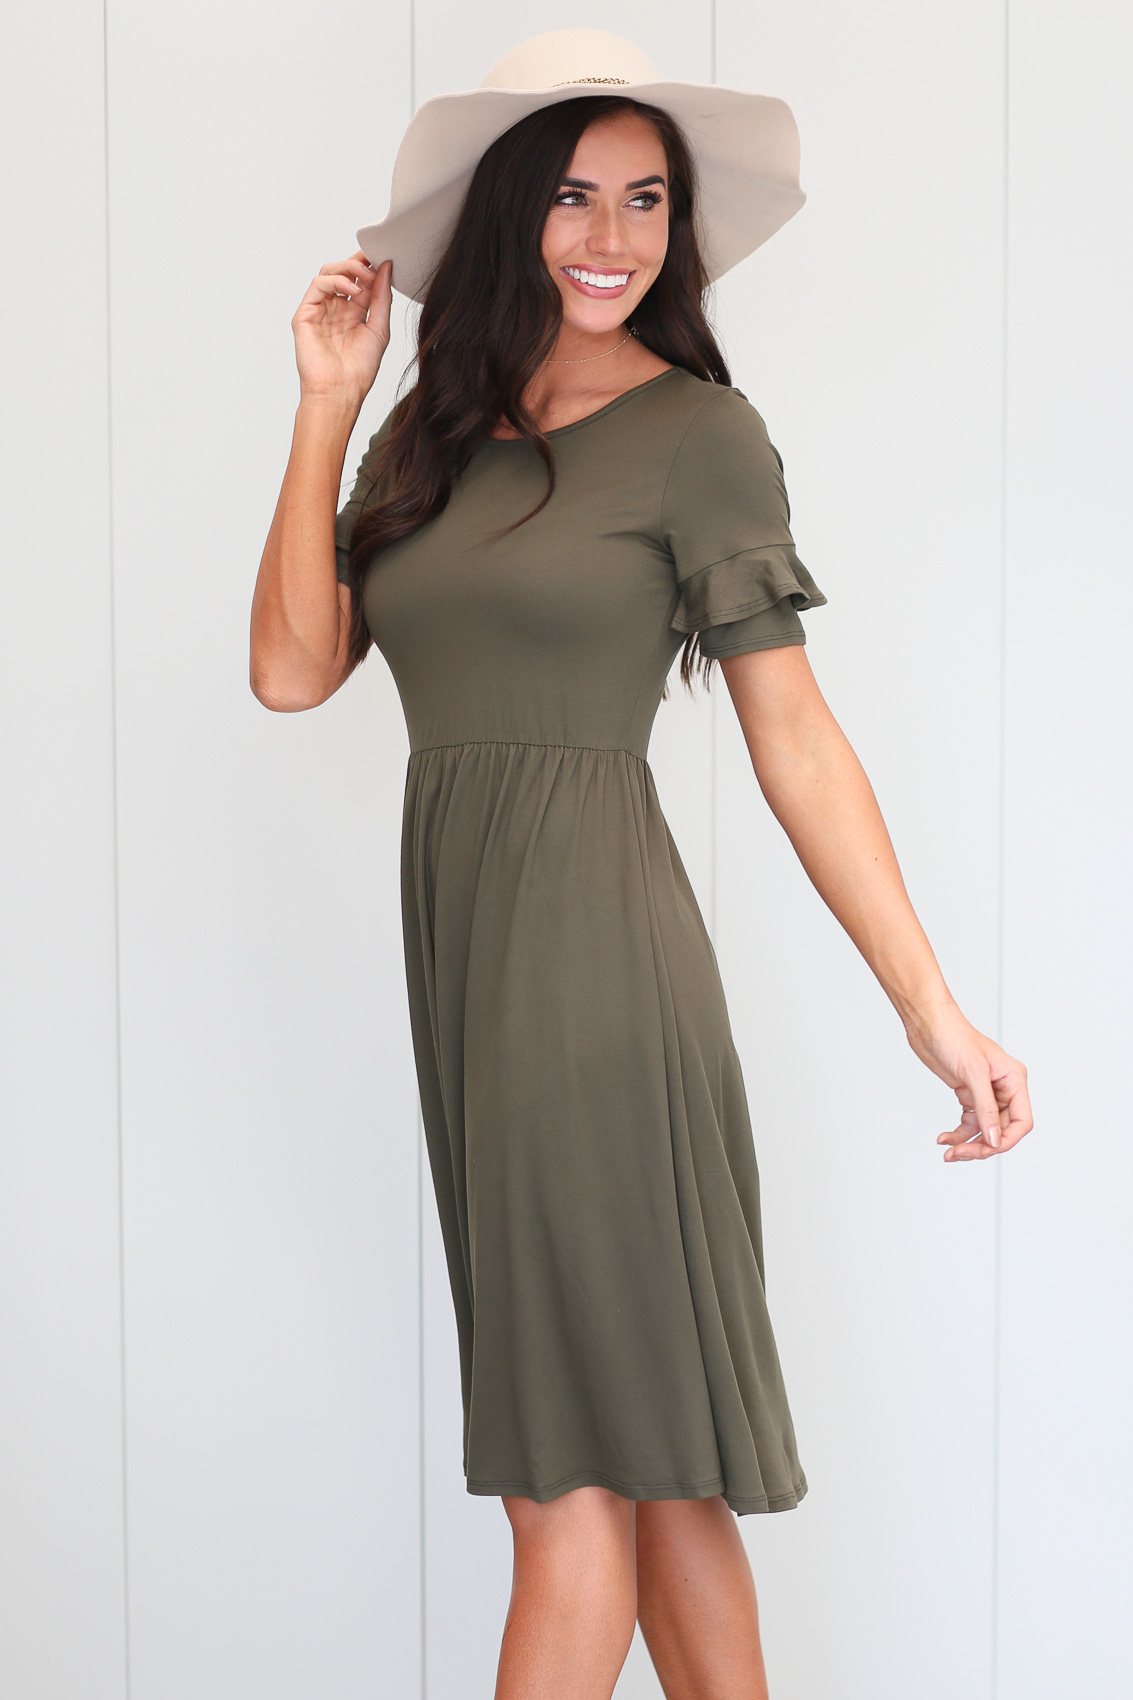 312a5ab38 Nessa Modest Dress or Modest Bridesmaid Dress in Olive Green